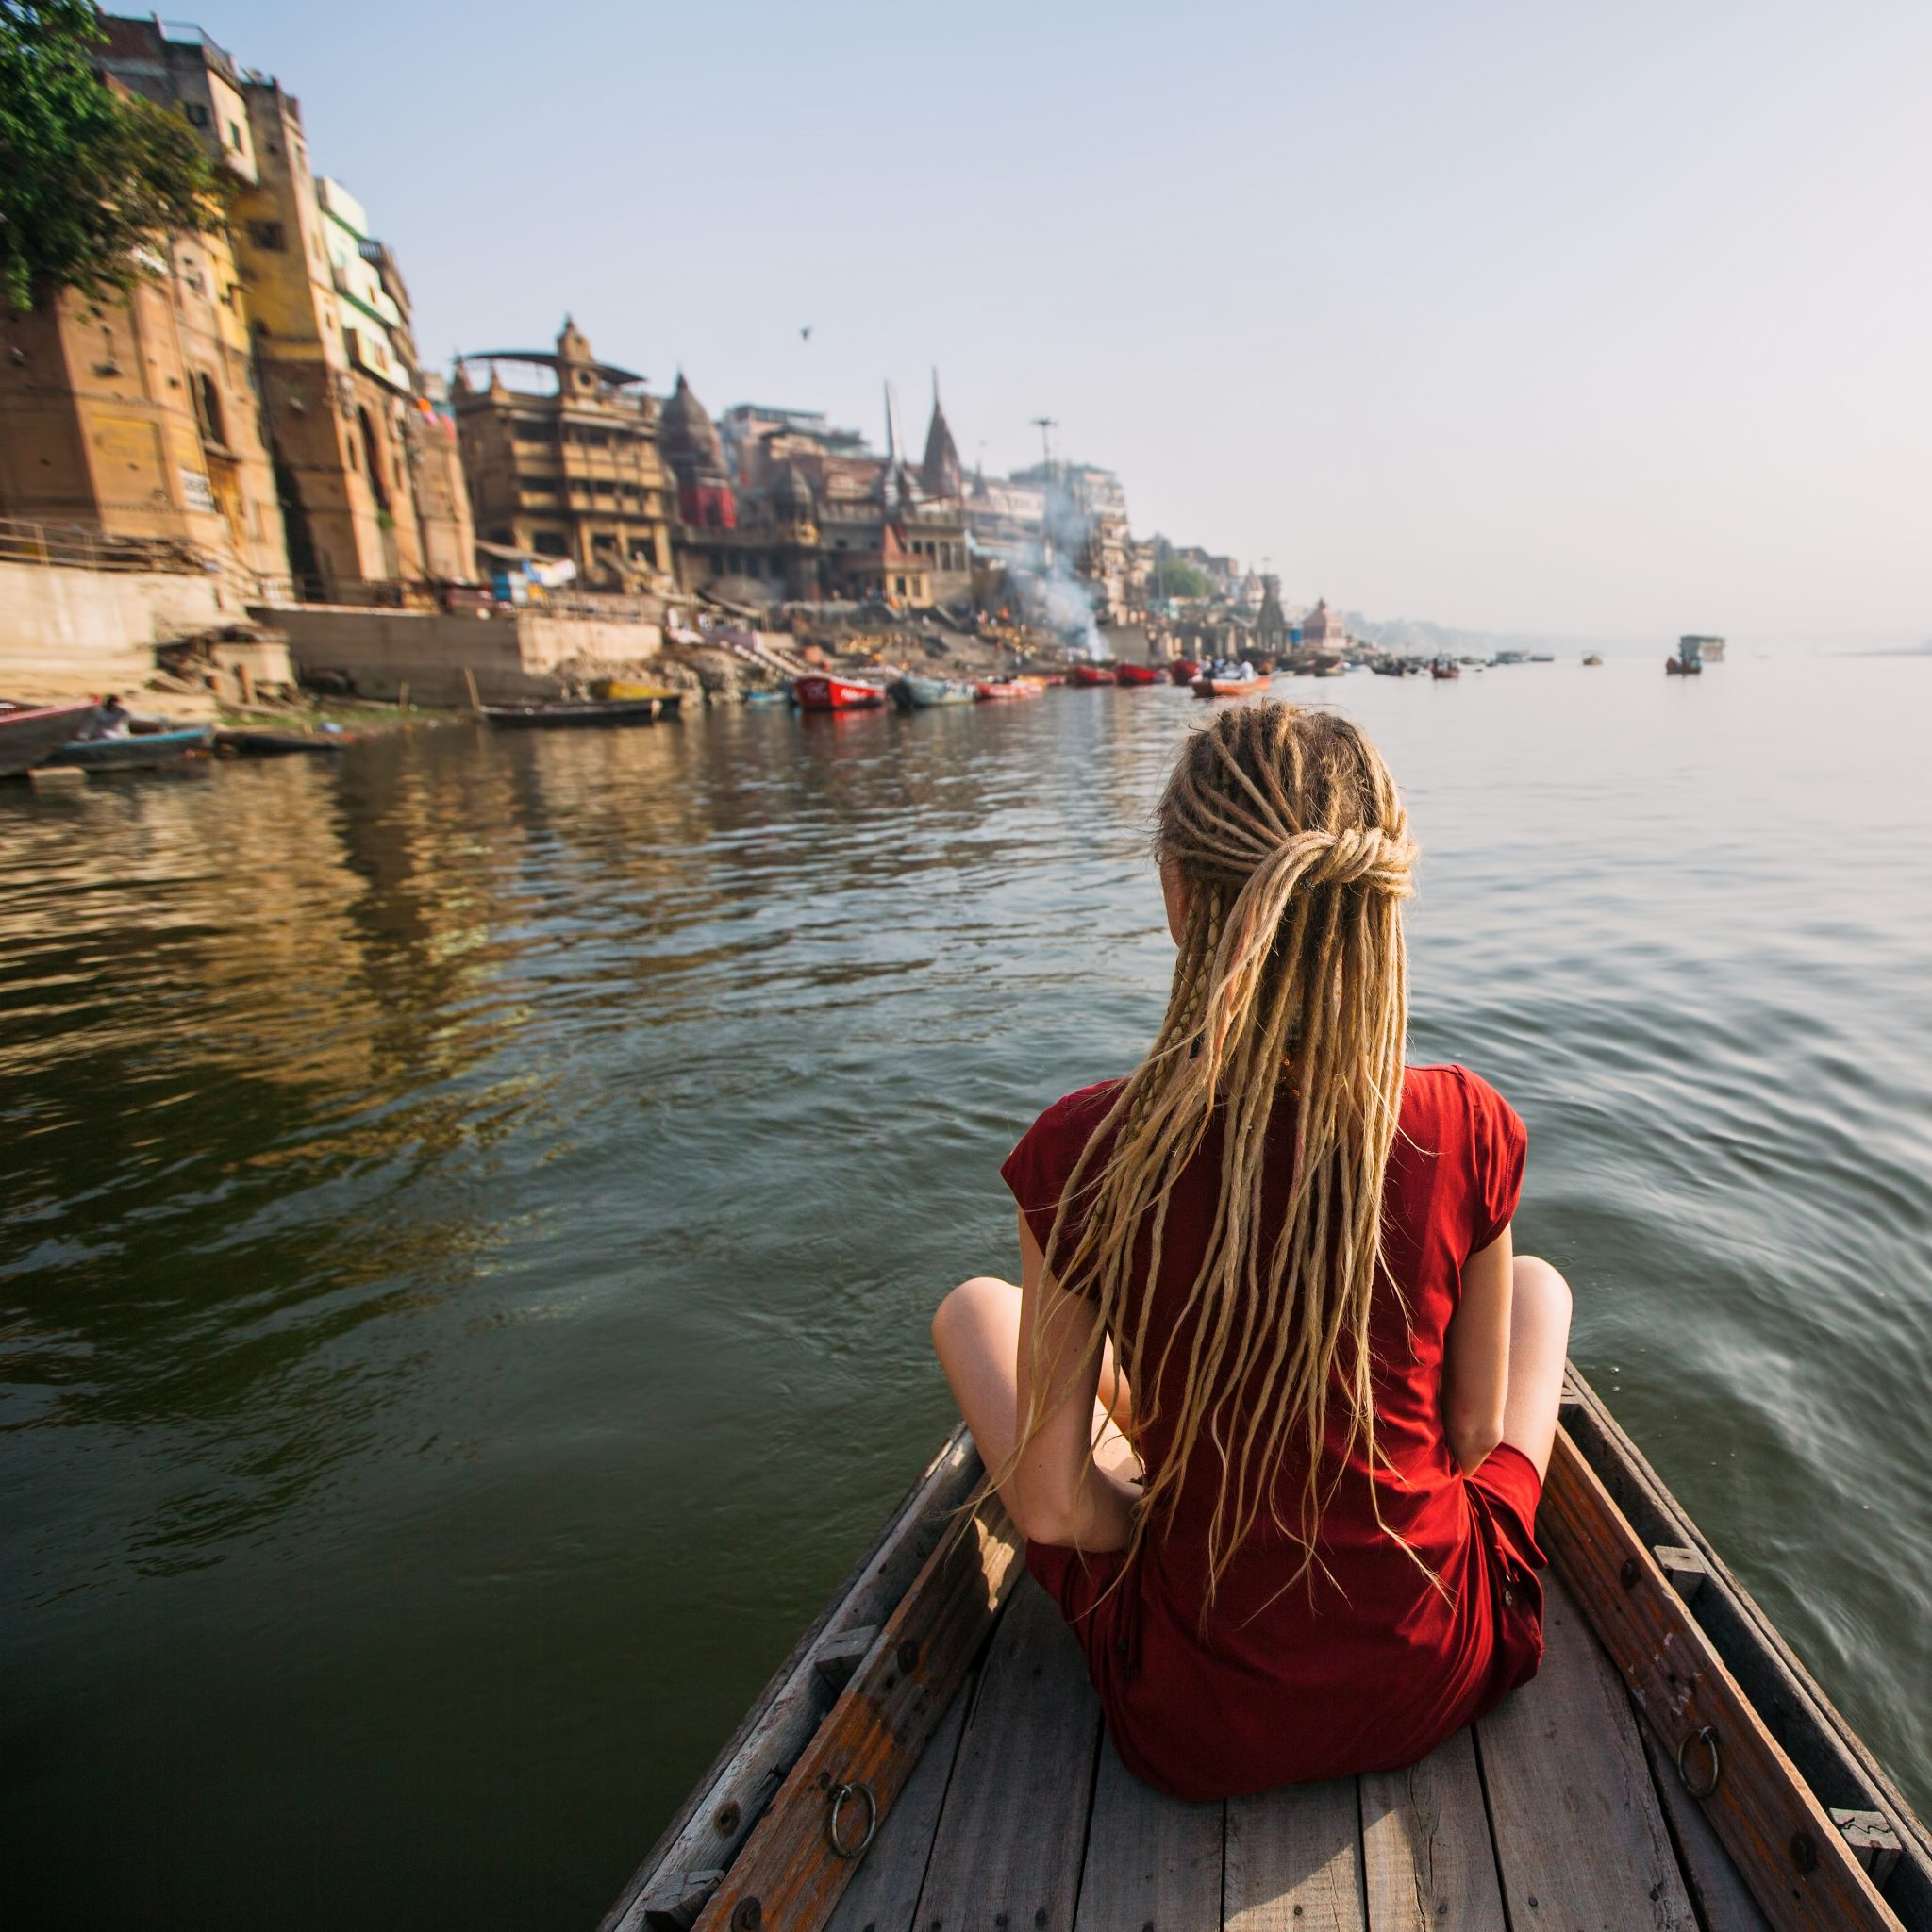 Woman traveler on a boat in the Ganges river waters, Varanasi, India.